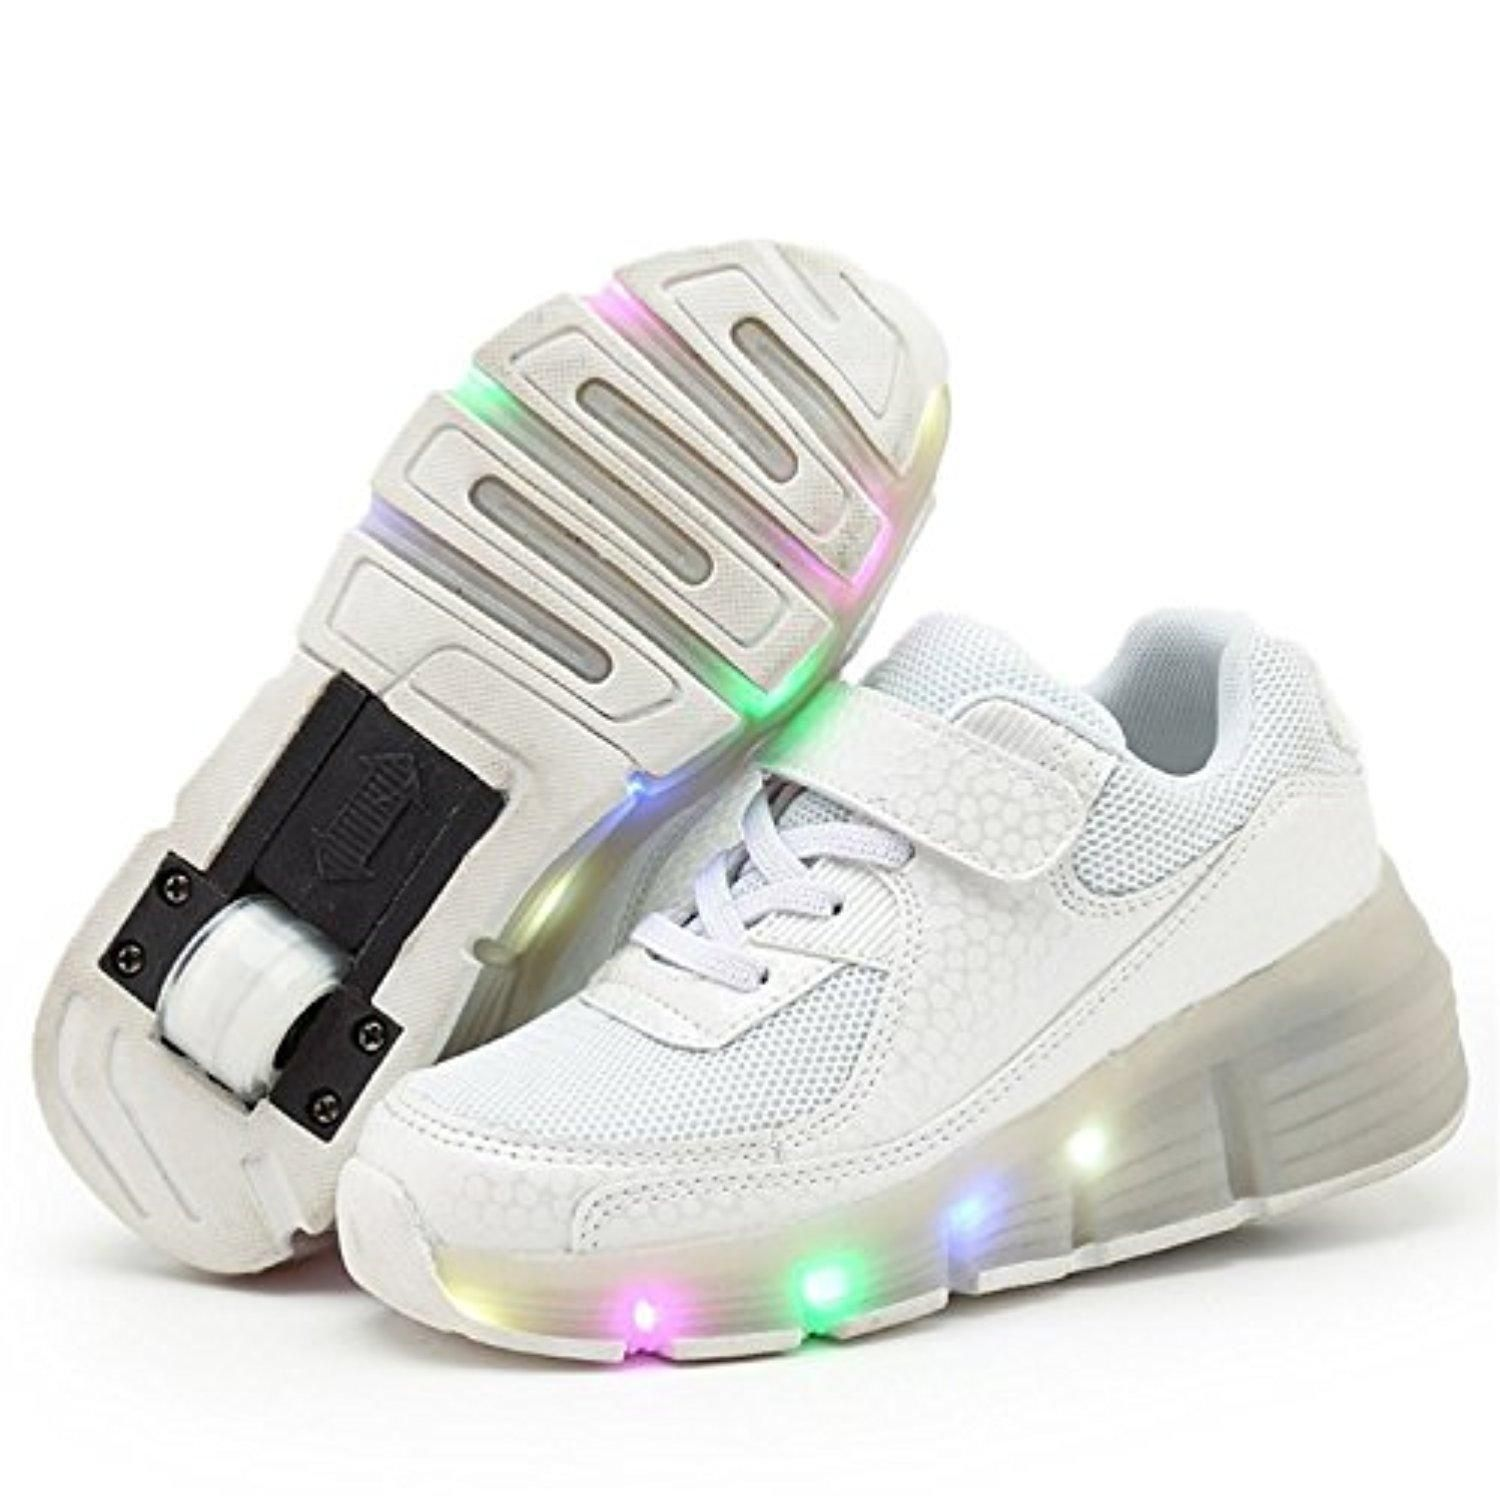 Meihualu Boys Girls Children Heelys Roller Shoes Glowing Flashing Sneakers  Whitebig Kid 55mFoot Length 235mm Excellent Design